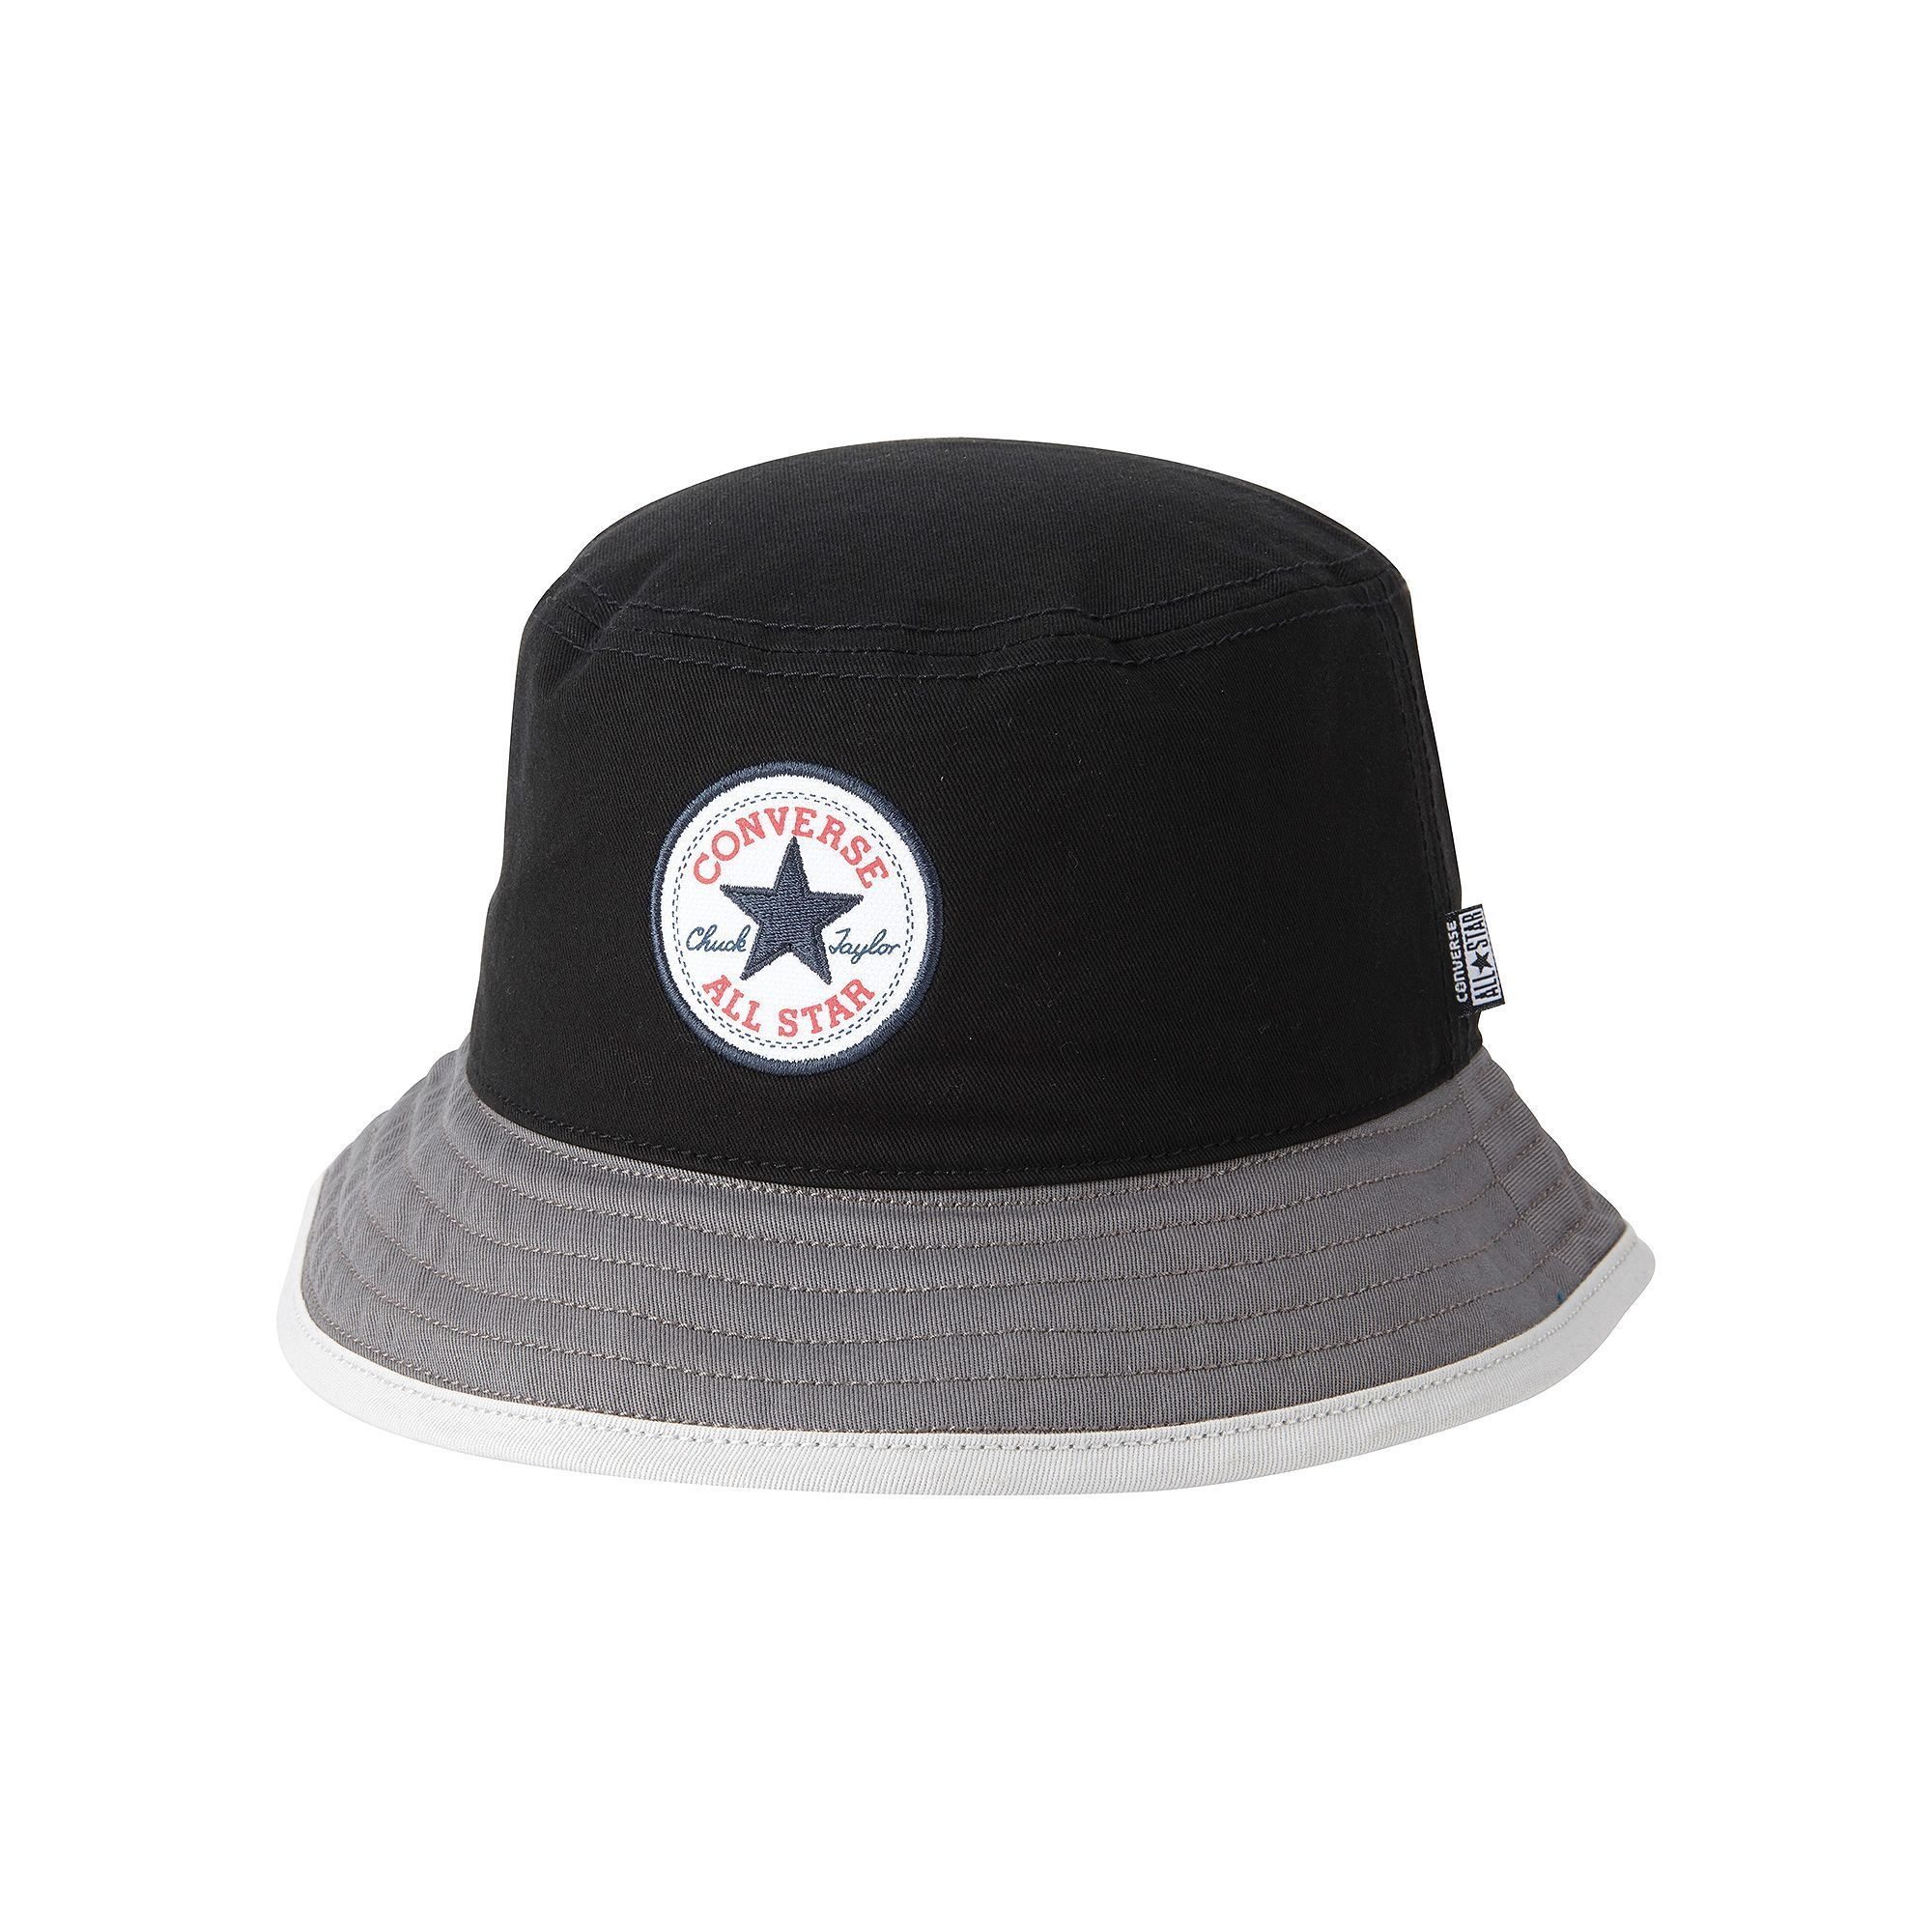 converse all star hat